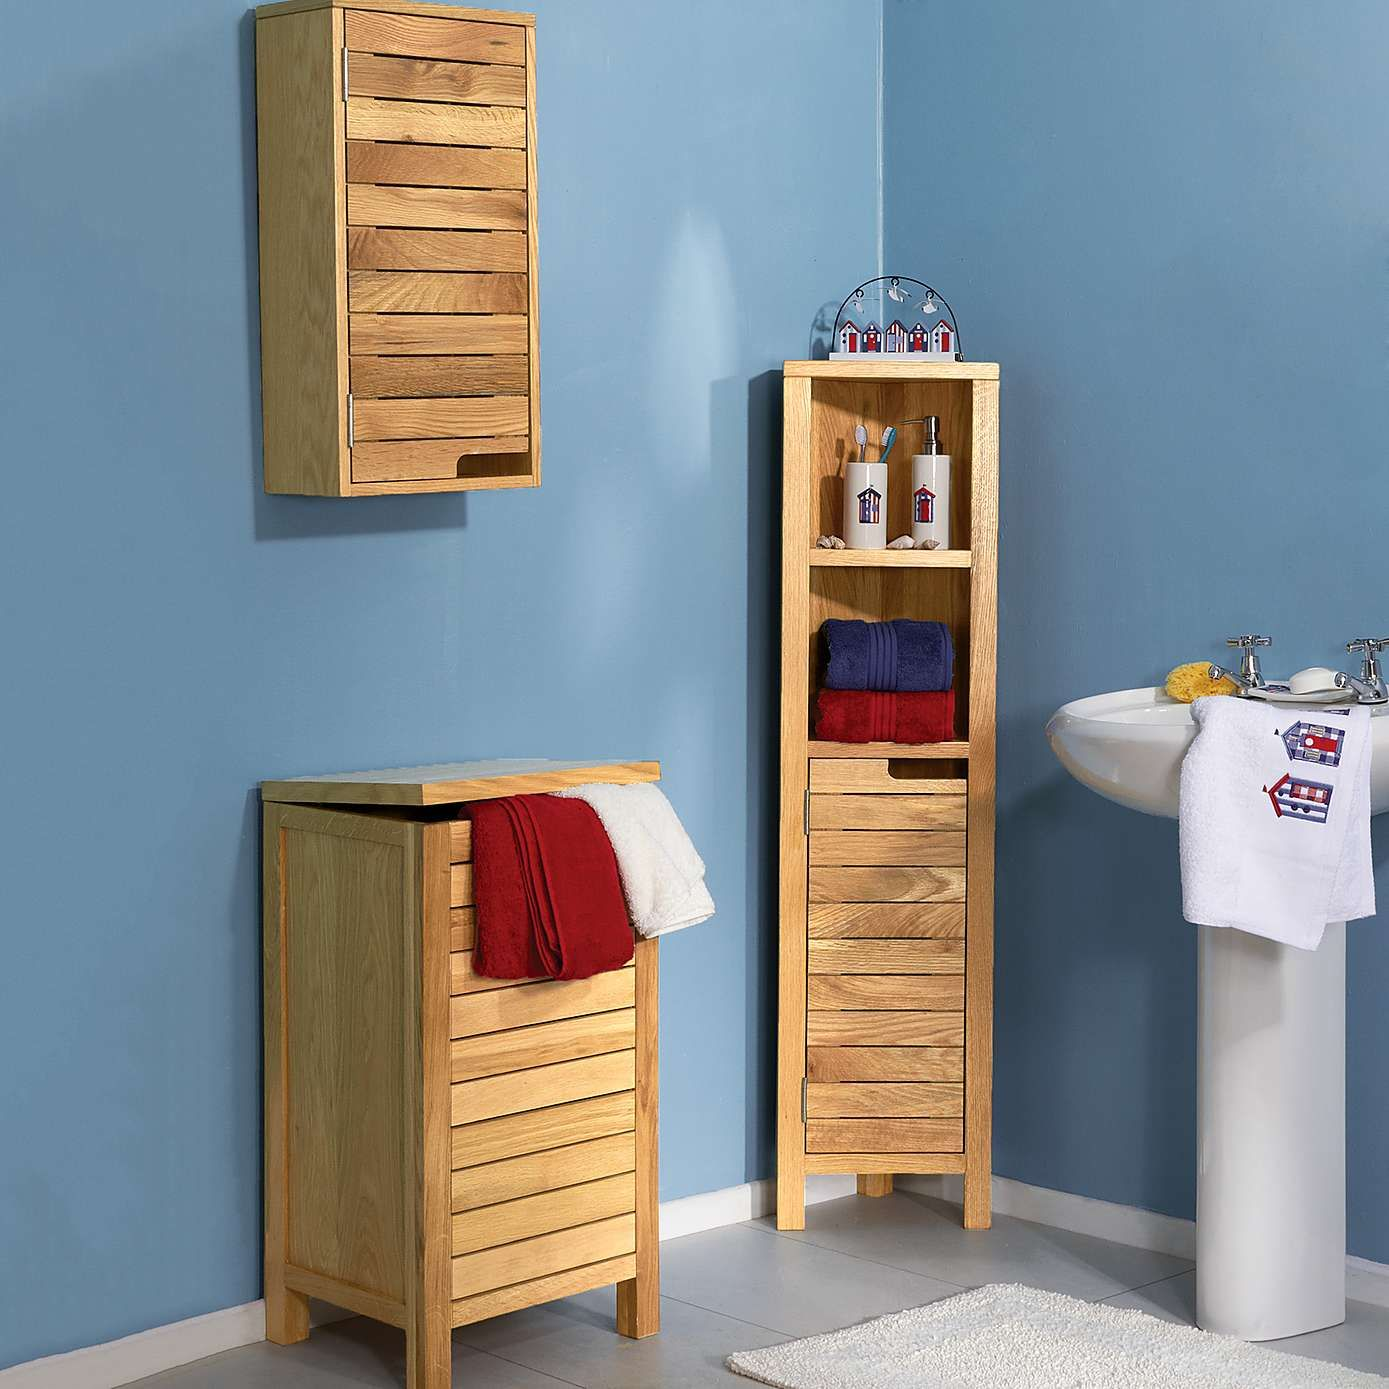 Milan Oak Slatted Tall Corner Unit | Dunelm | Bedroom ideas ...